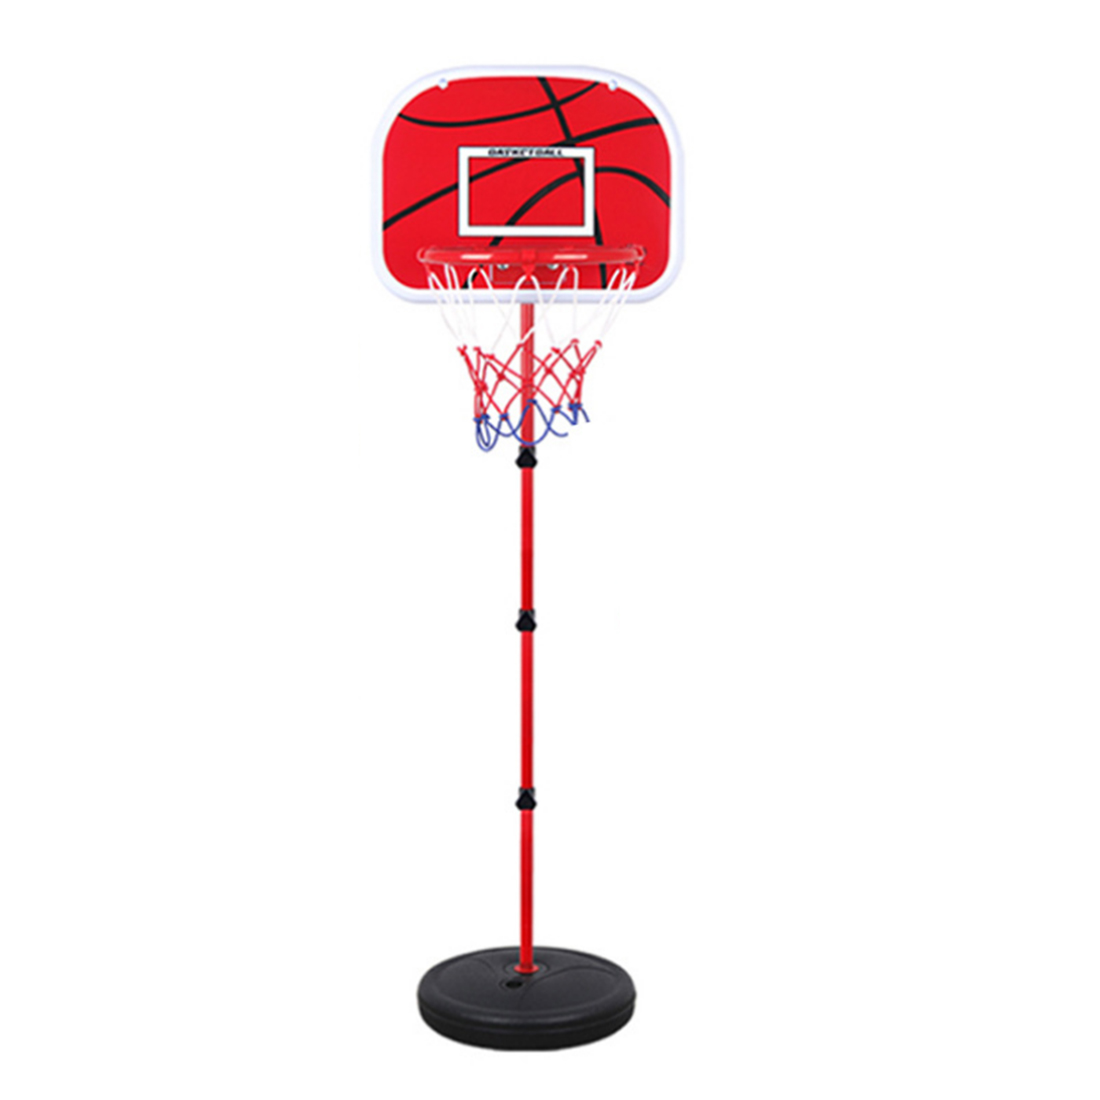 Adjustable Basketball Hoop >> 73 170CM Basketball Stands Height Adjustable Kids Basketball Goal Hoop Toy Set Basketball for ...